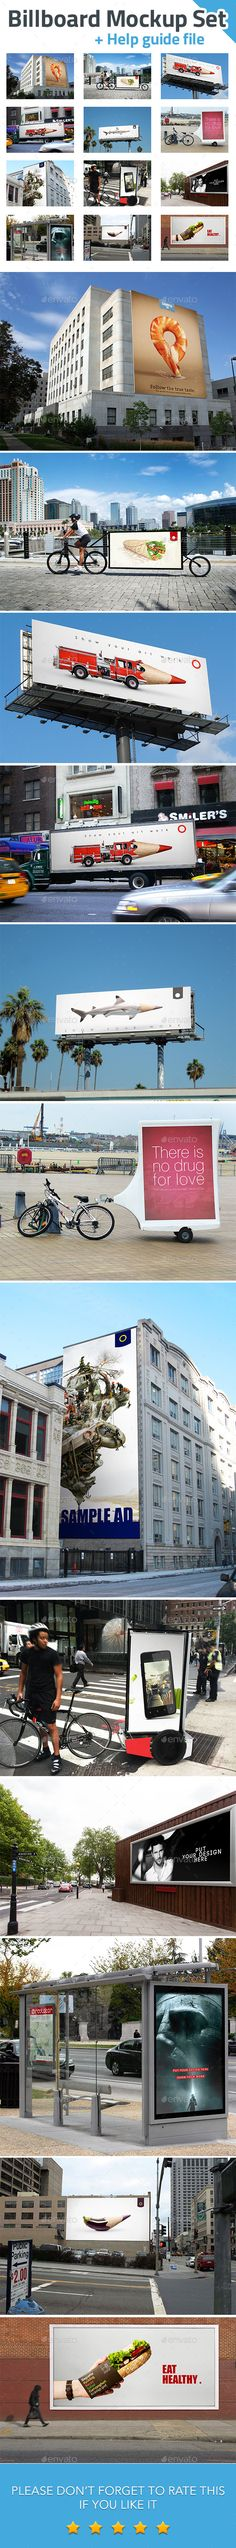 Billboard Mockup Set Download here: https://graphicriver.net/item/billboard-mockup-set/9323620?ref=KlitVogli